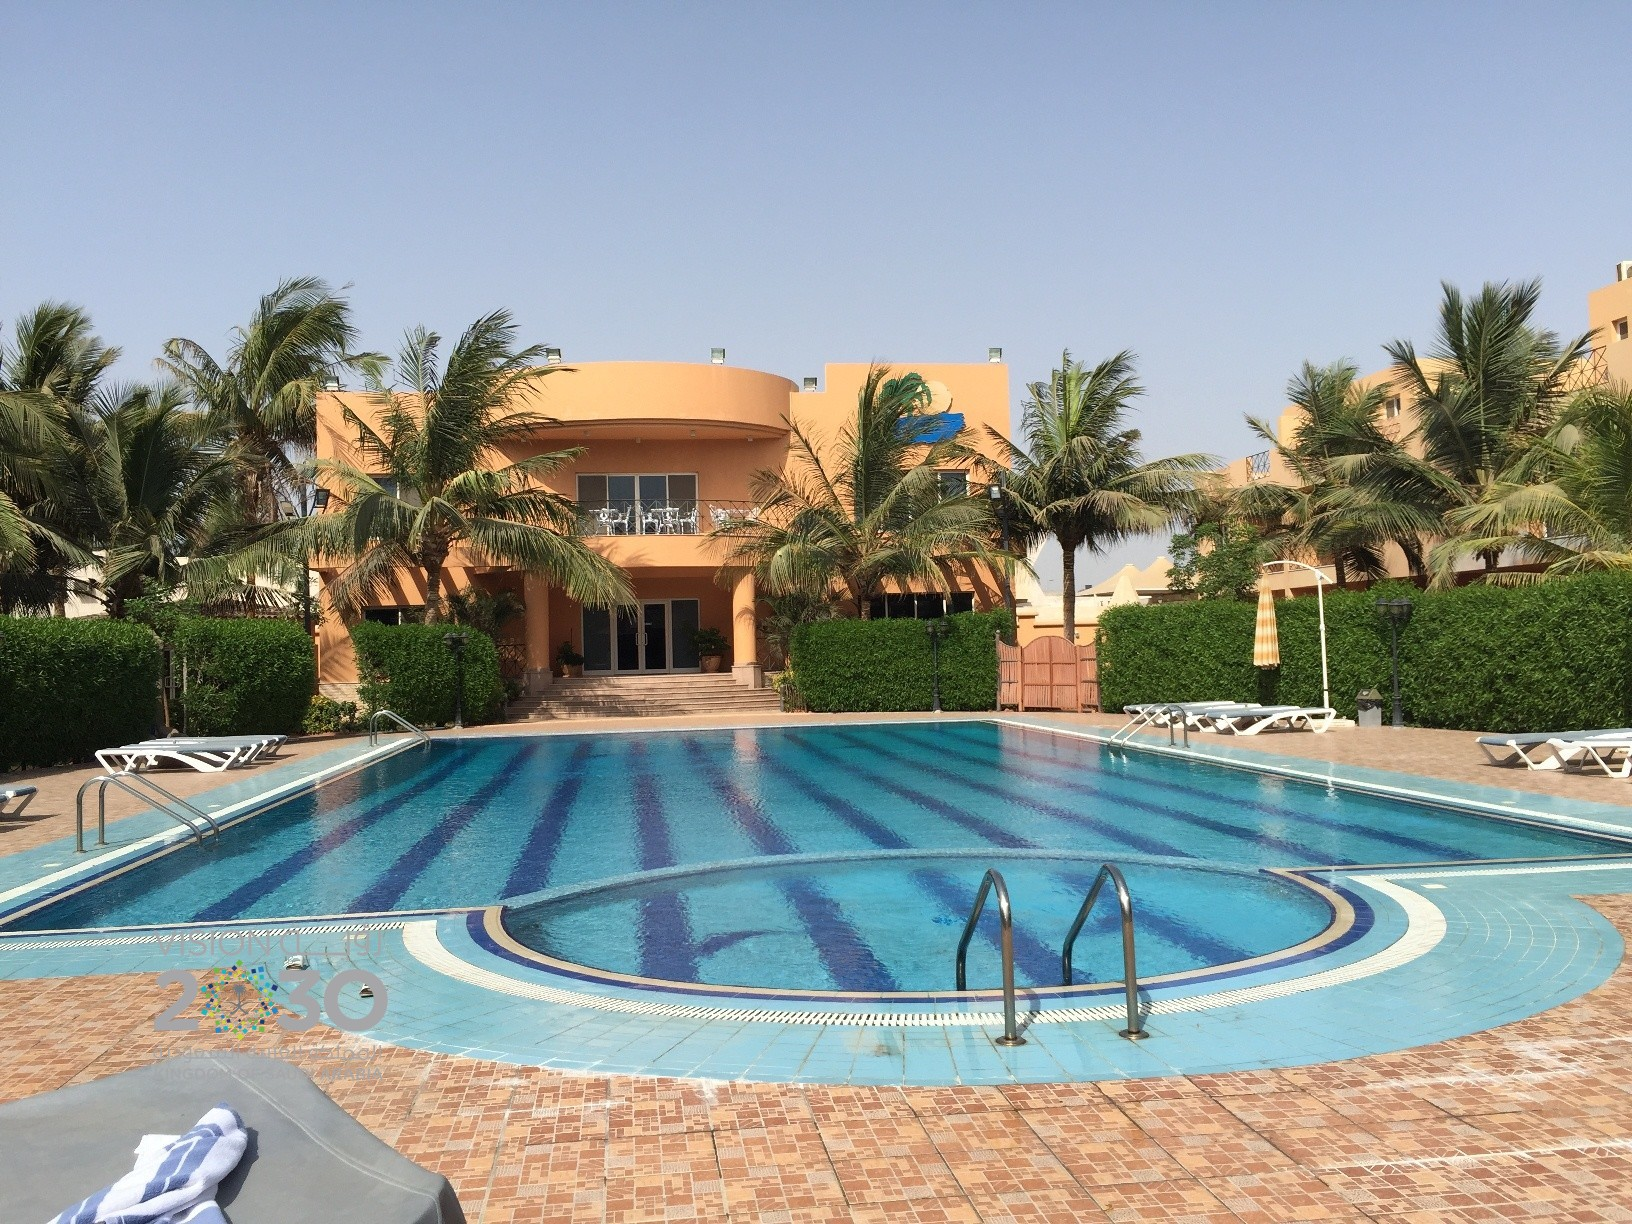 <br /> <b>Notice</b>:  Undefined variable: https://s3-ap-southeast-1.amazonaws.com/mycrm-pro-accounts-v2/property/full/1908/iW8ryBBuNYfRXamj.jpeg in <b>/home/a2erfg/public_html/livingcompound.com/index.php</b> on line <b>552</b><br />